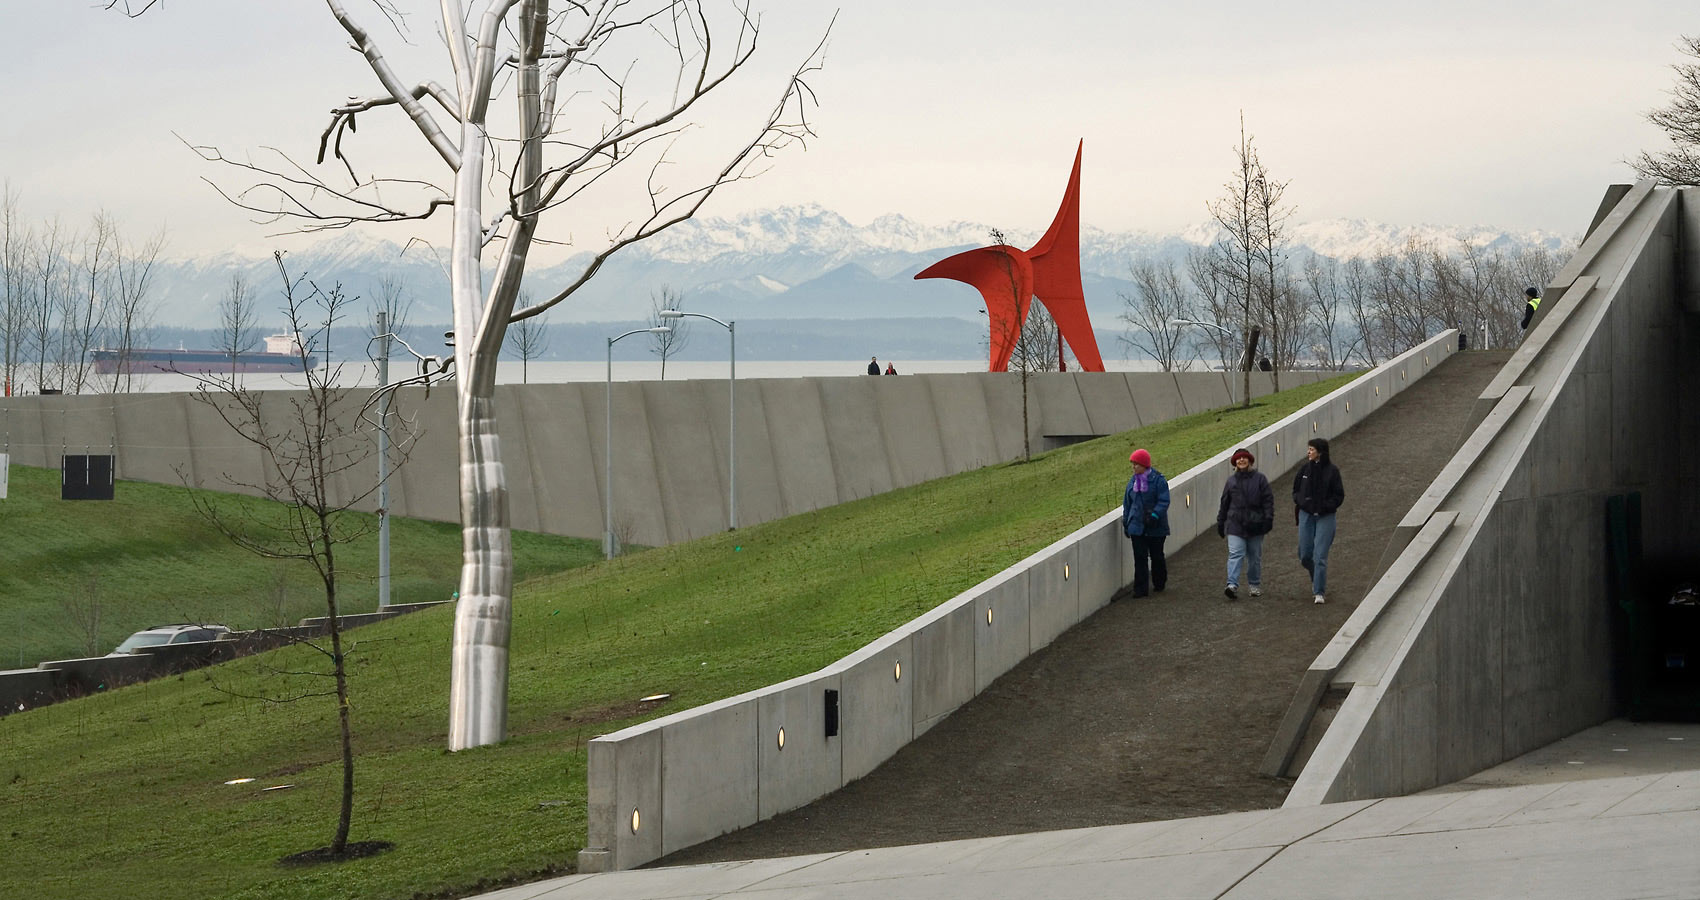 Sculpture park image library library Weiss/Manfredi: Seattle Art Museum: Olympic Sculpture Park image library library